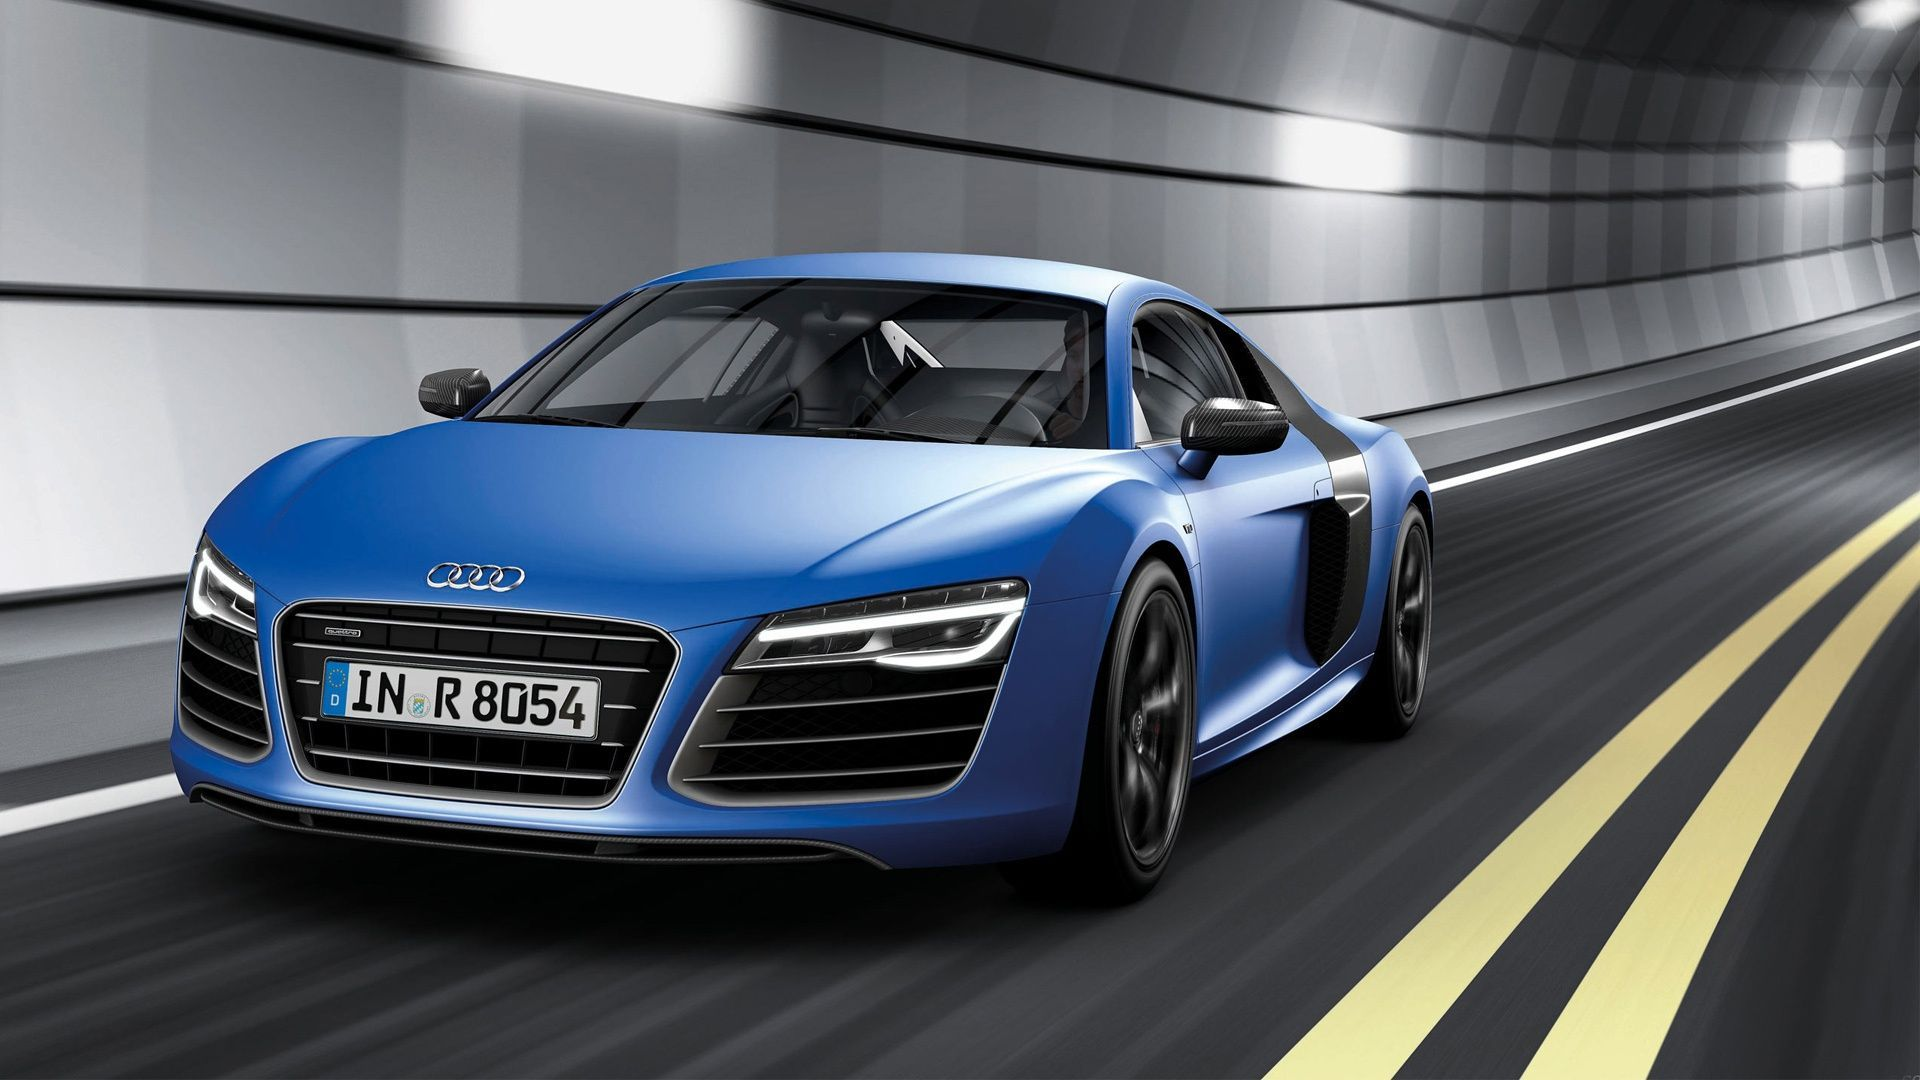 Audi R8 Wallpaper HD Free Download | New HD Wallpapers Download